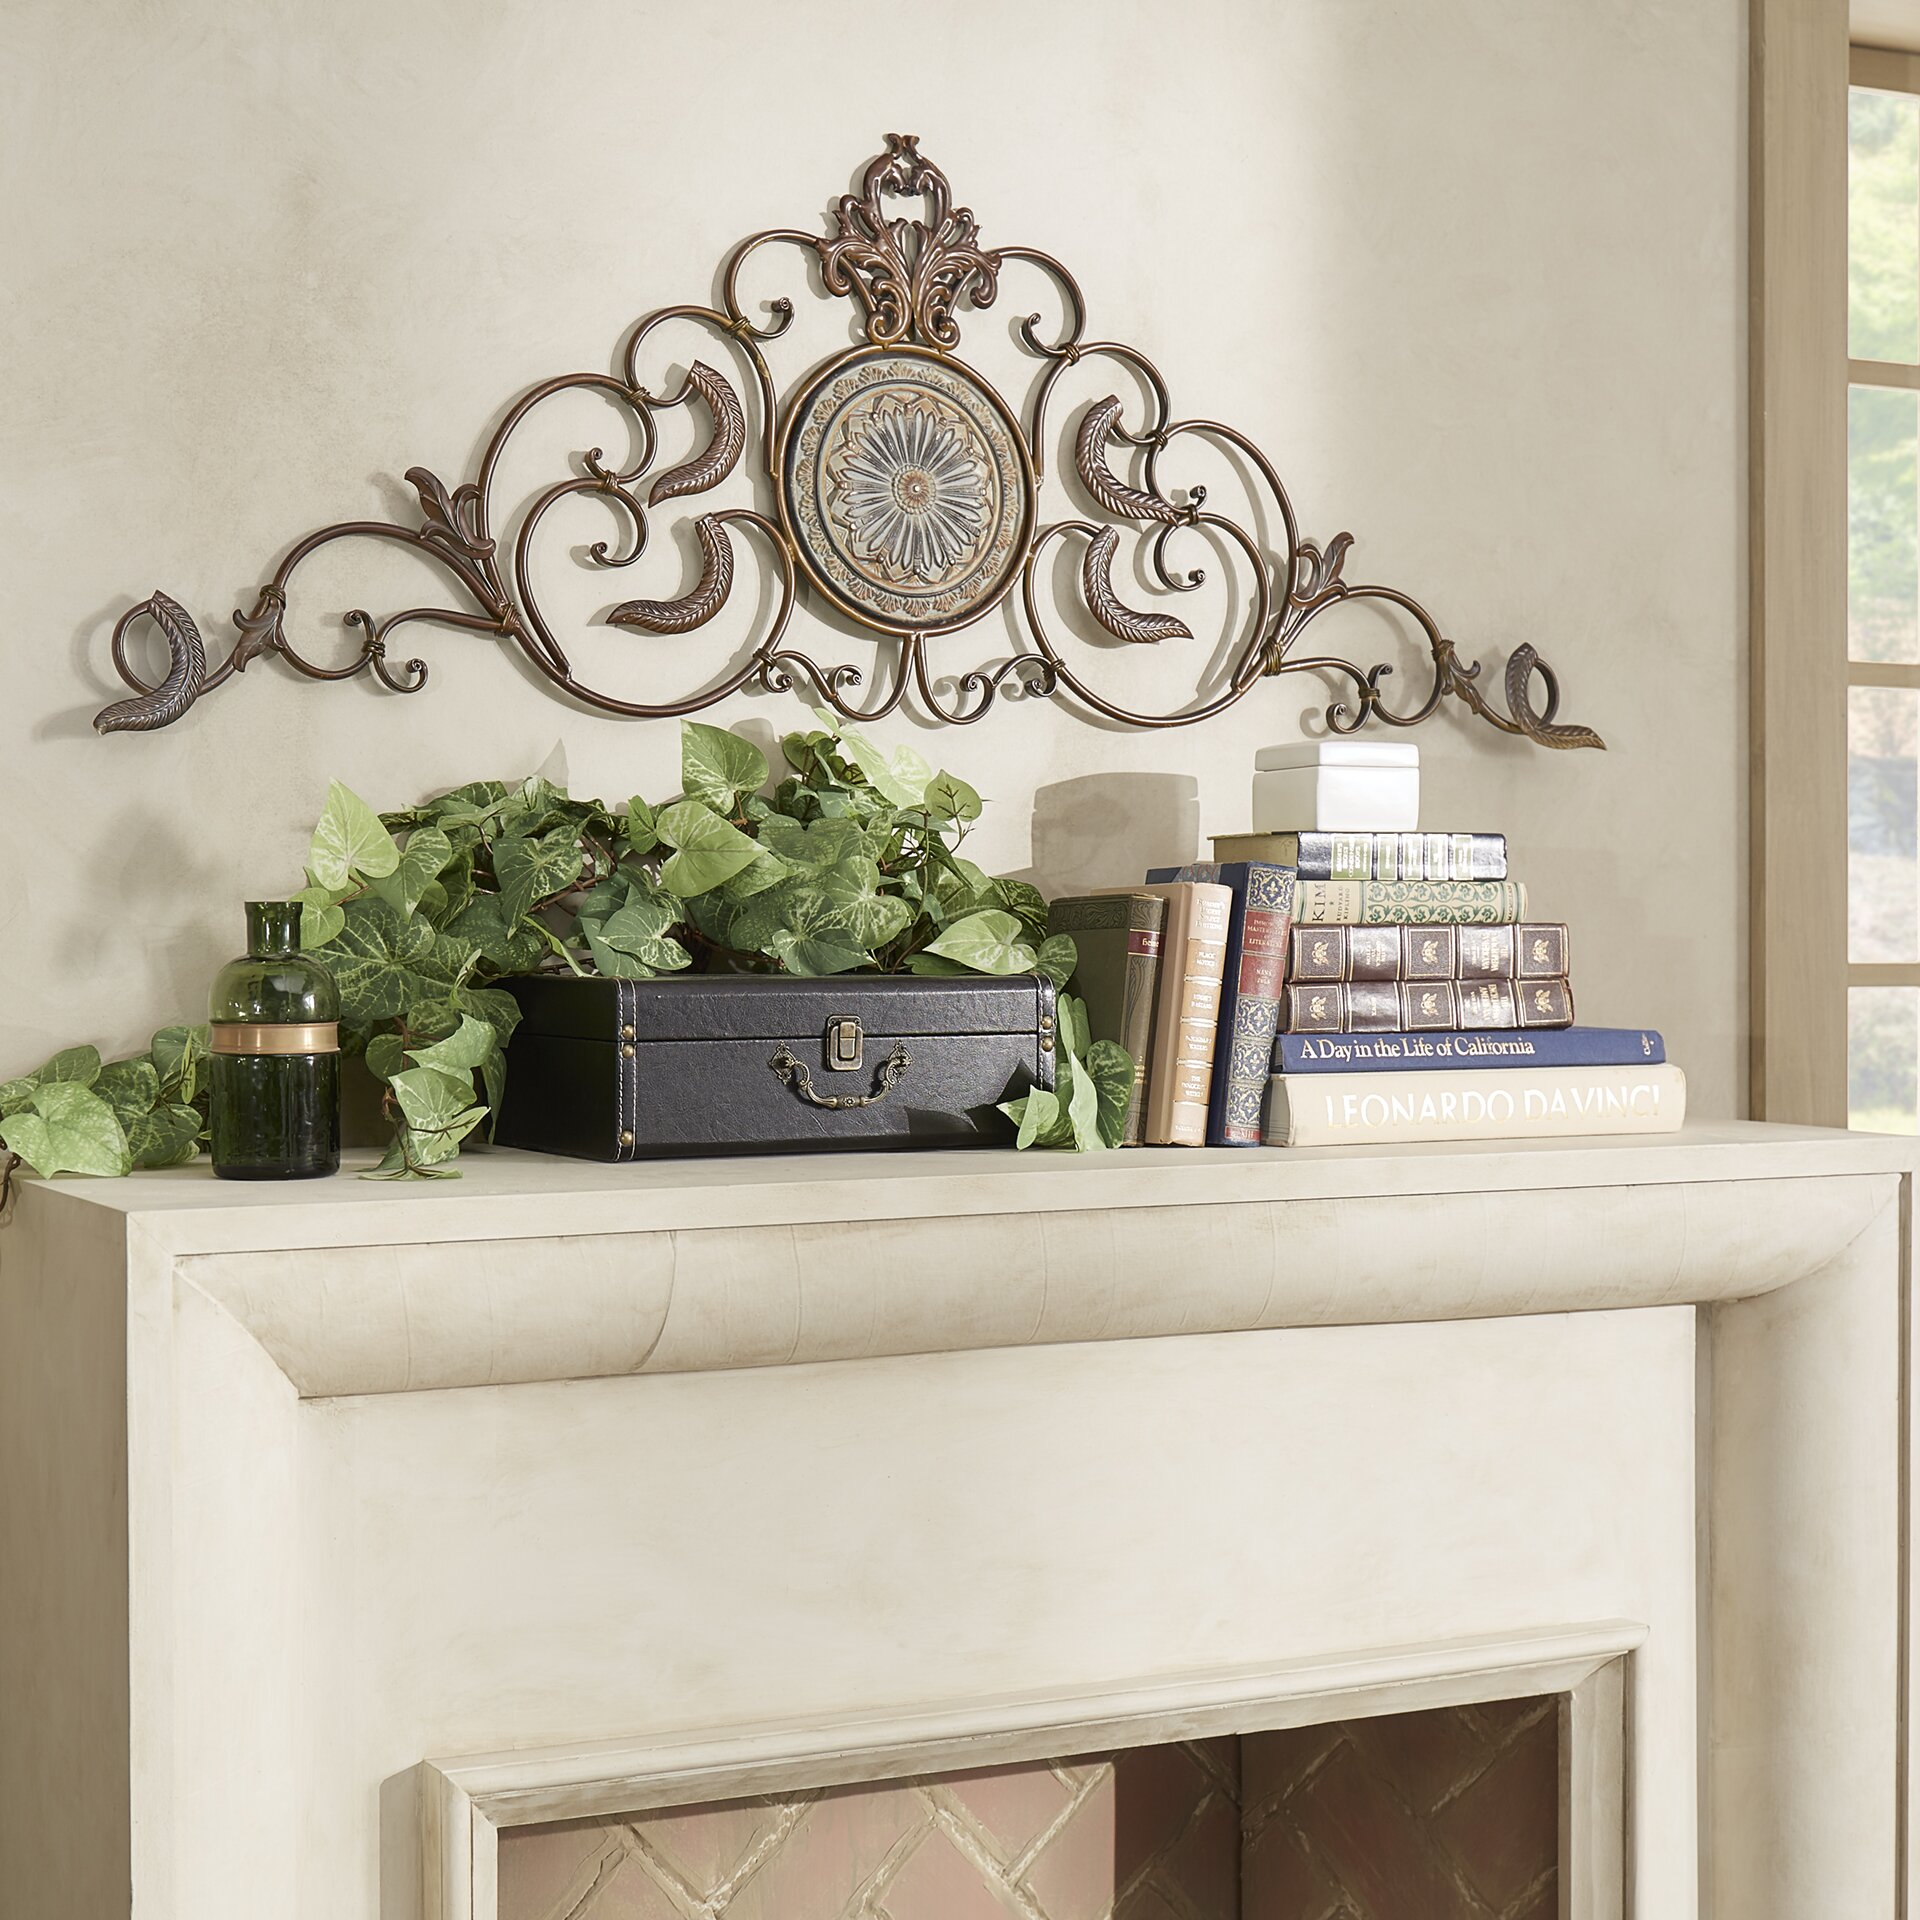 Wall Decor Horizontal : Three posts classic horizontal wall d?cor reviews wayfair